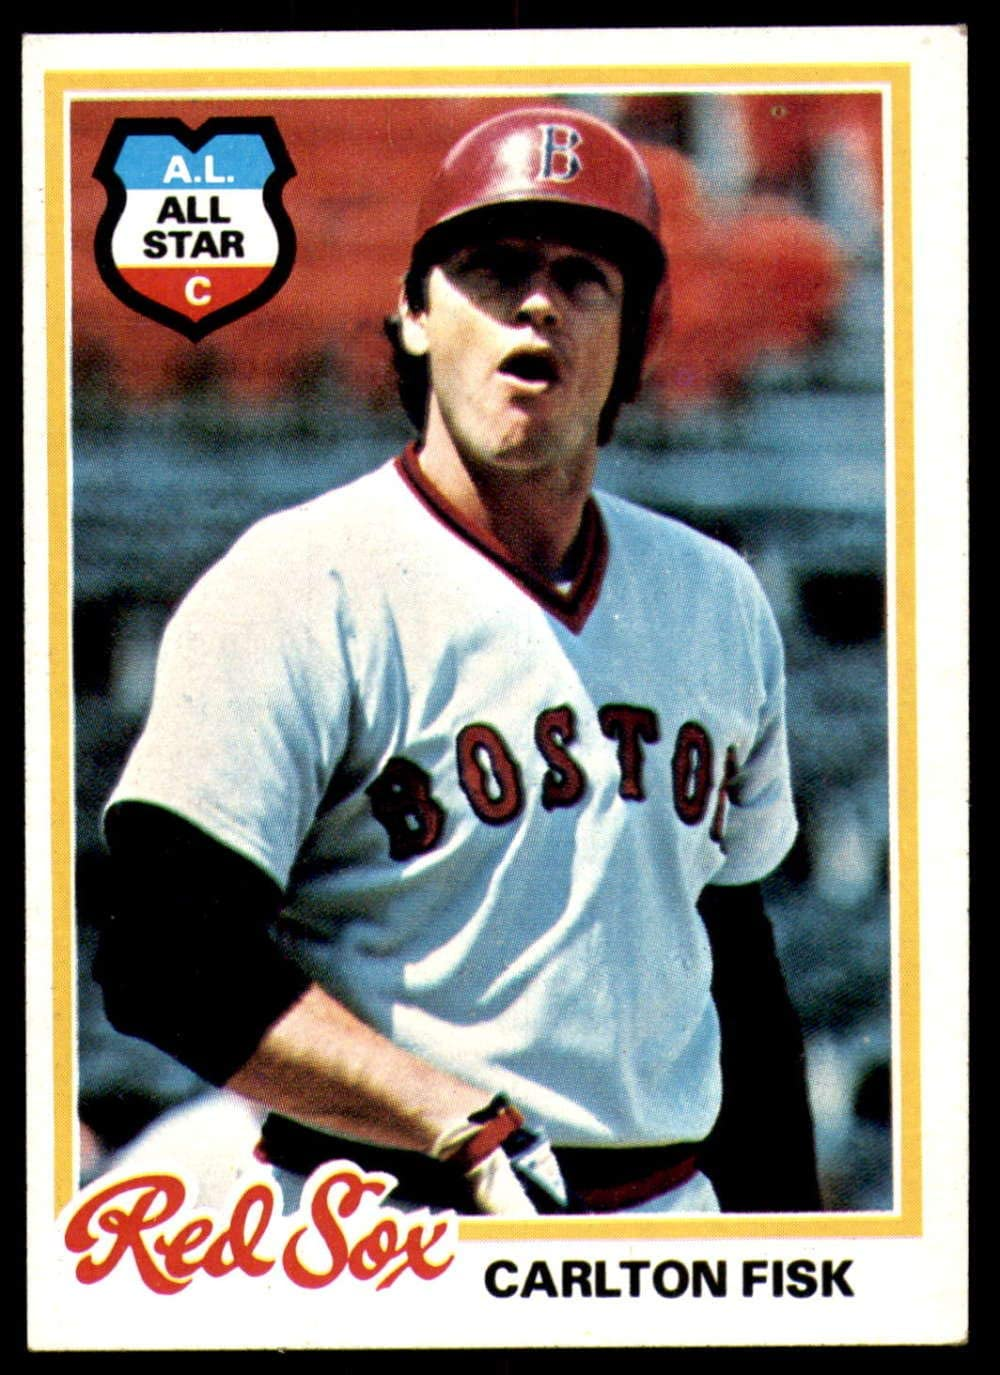 2010 Topps Tales of the Game #TOG-13 Carlton Fisk Red Sox Baseball Card Waves Home Run in 1975 World Series Game 6